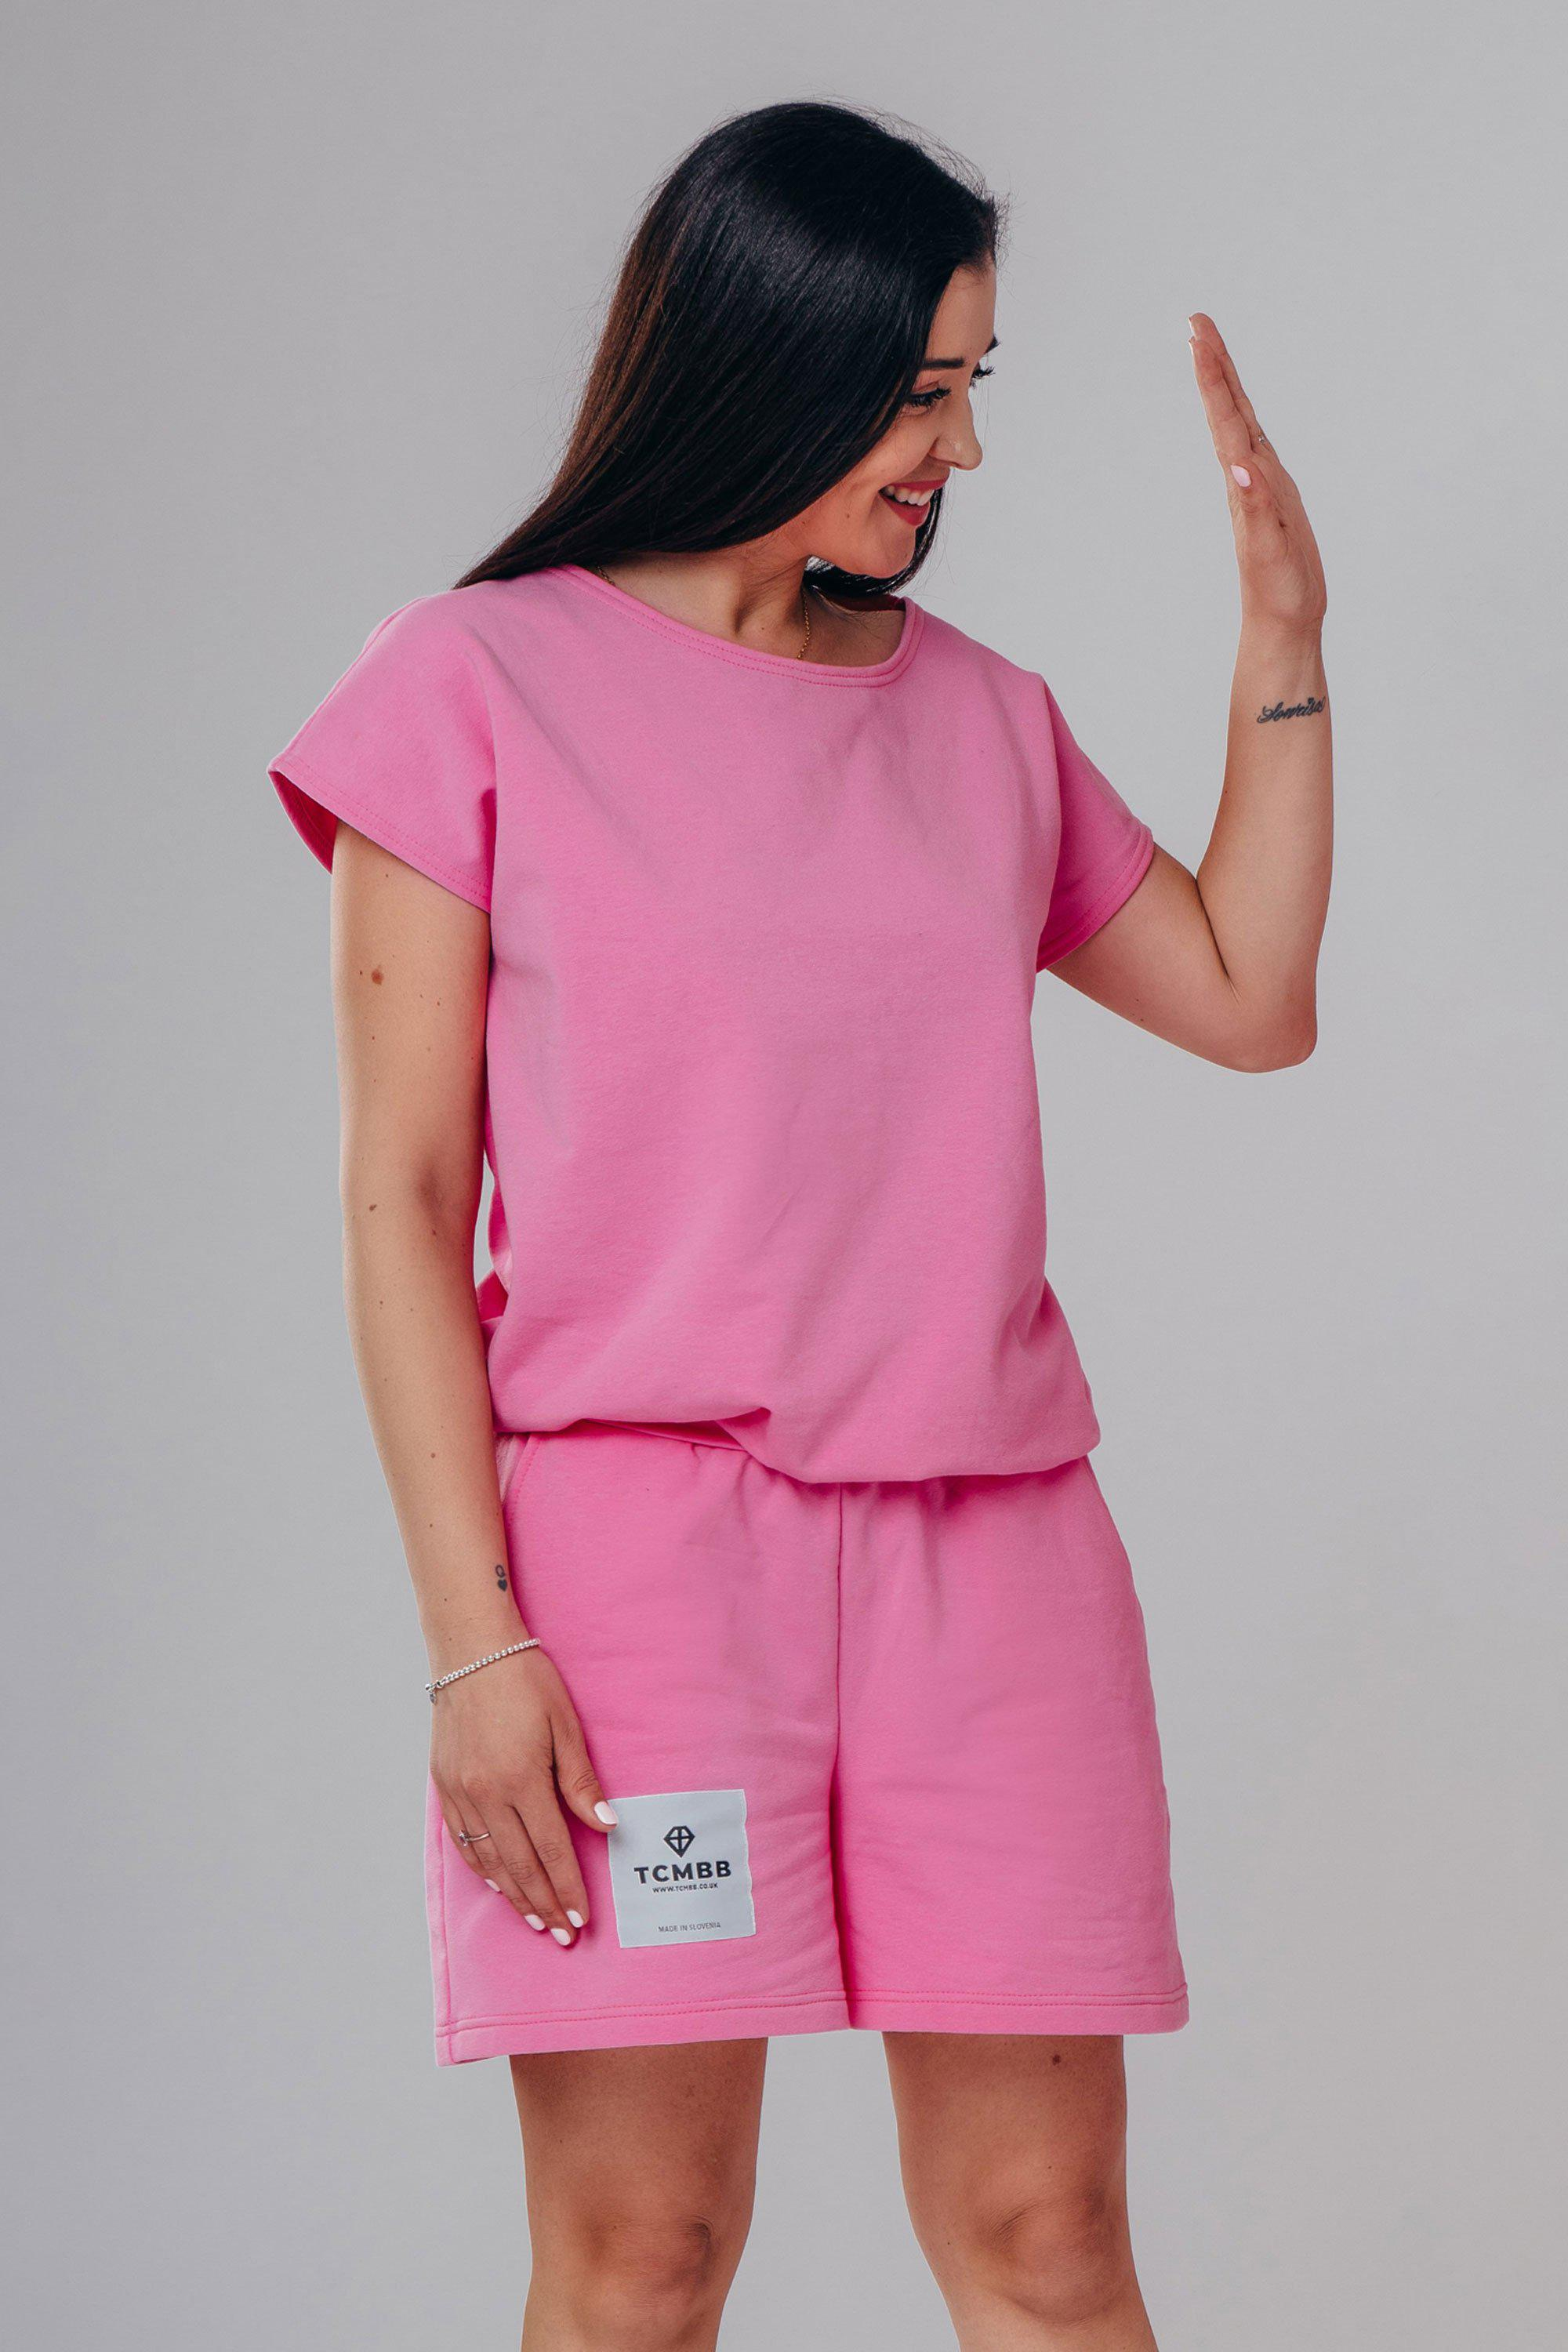 Adult Summer Shorts & Tee Set Made From Organic Cotton